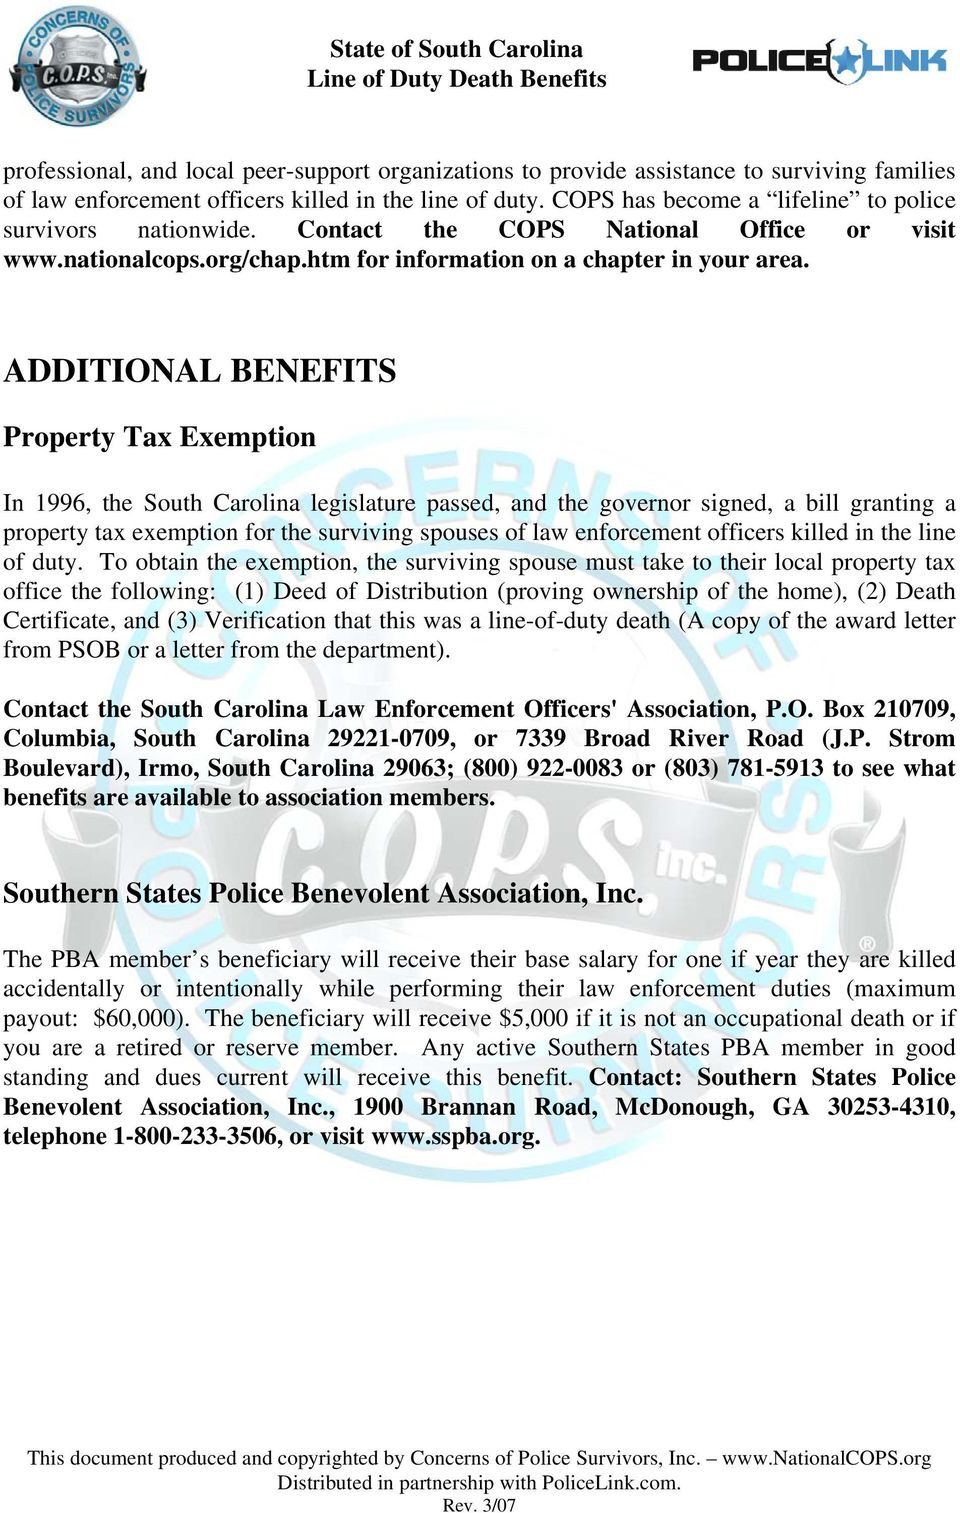 ADDITIONAL BENEFITS Property Tax Exemption In 1996, the South Carolina legislature passed, and the governor signed, a bill granting a property tax exemption for the surviving spouses of law